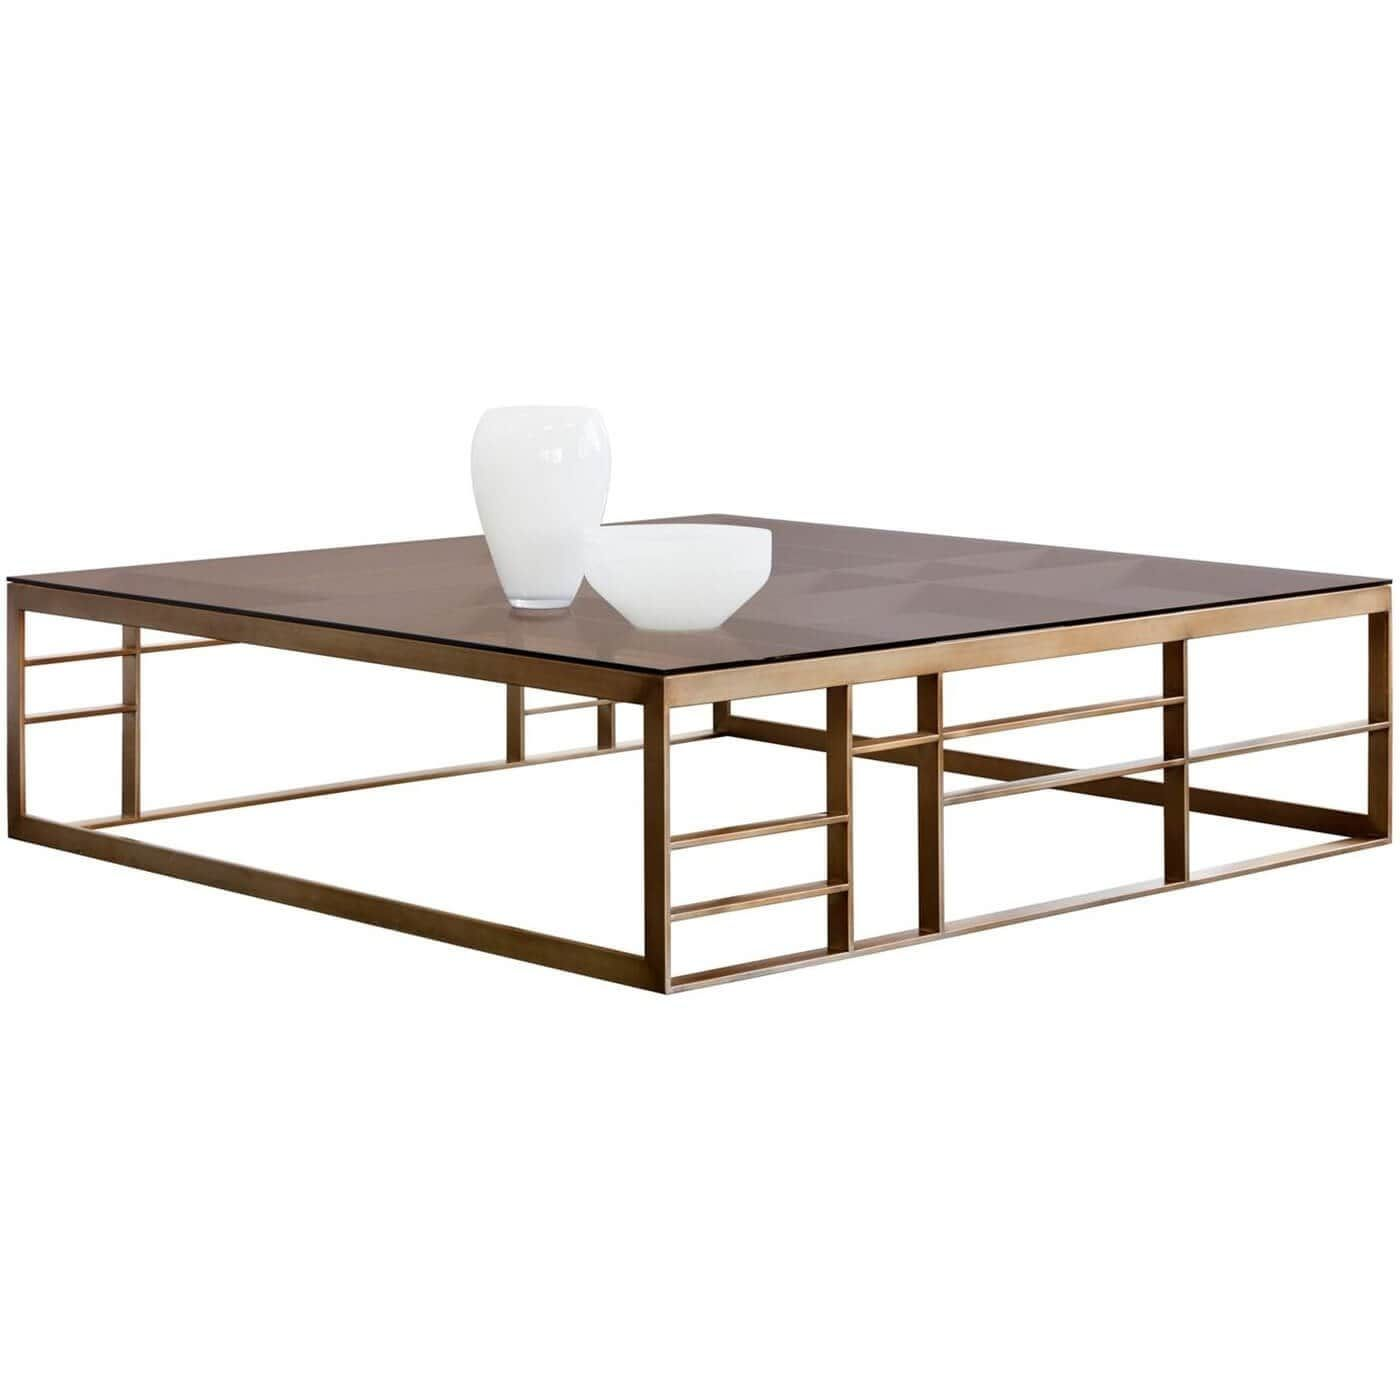 Joanna Coffee Table Square Antique Brass Brown Glass In 2021 Coffee Table Oversized Square Coffee Table Chic Coffee Table [ 1400 x 1400 Pixel ]